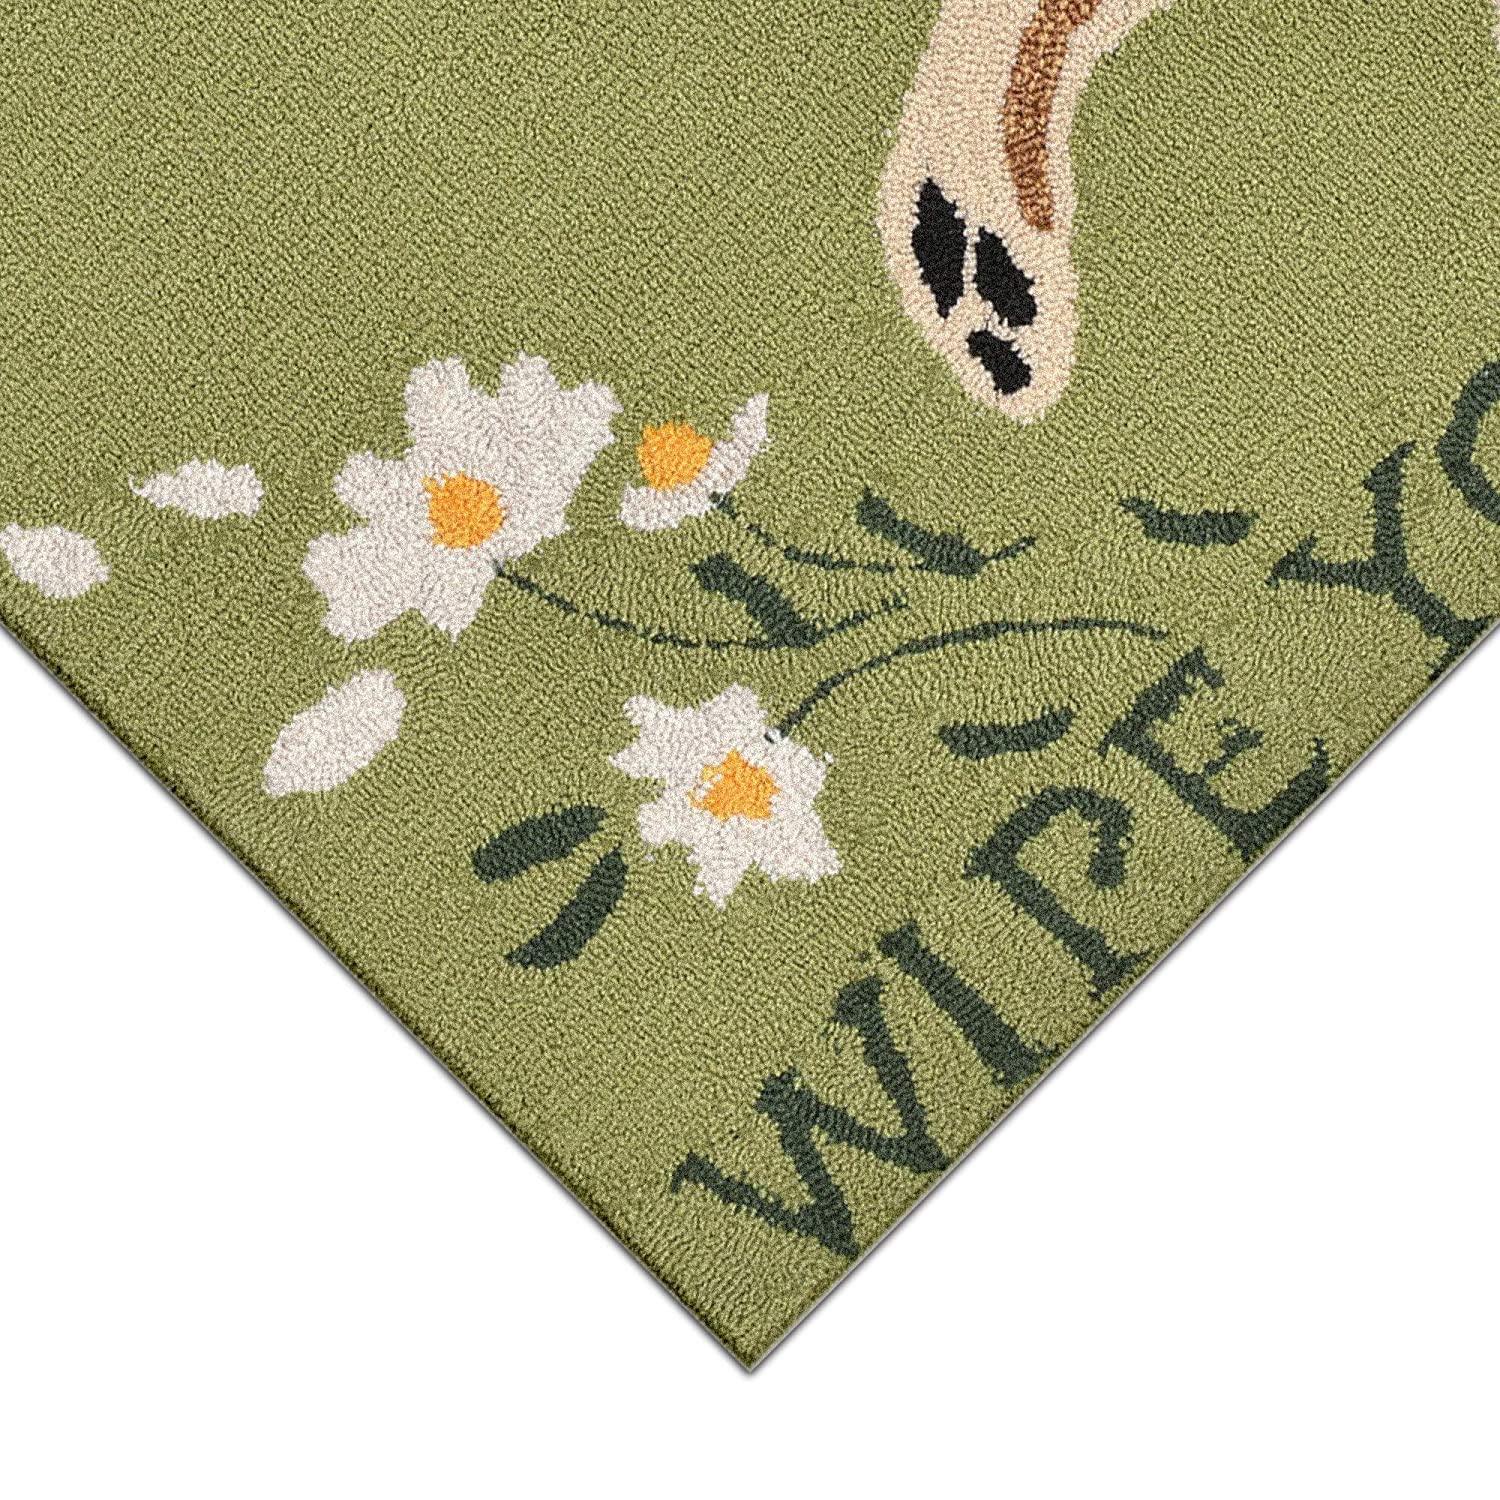 Liora Manne FTP34152206 Frontporch Front Porch Dog Wipe Your Paws Green Indoor//Outdoor Rug 26 x 4 Brown and Grren